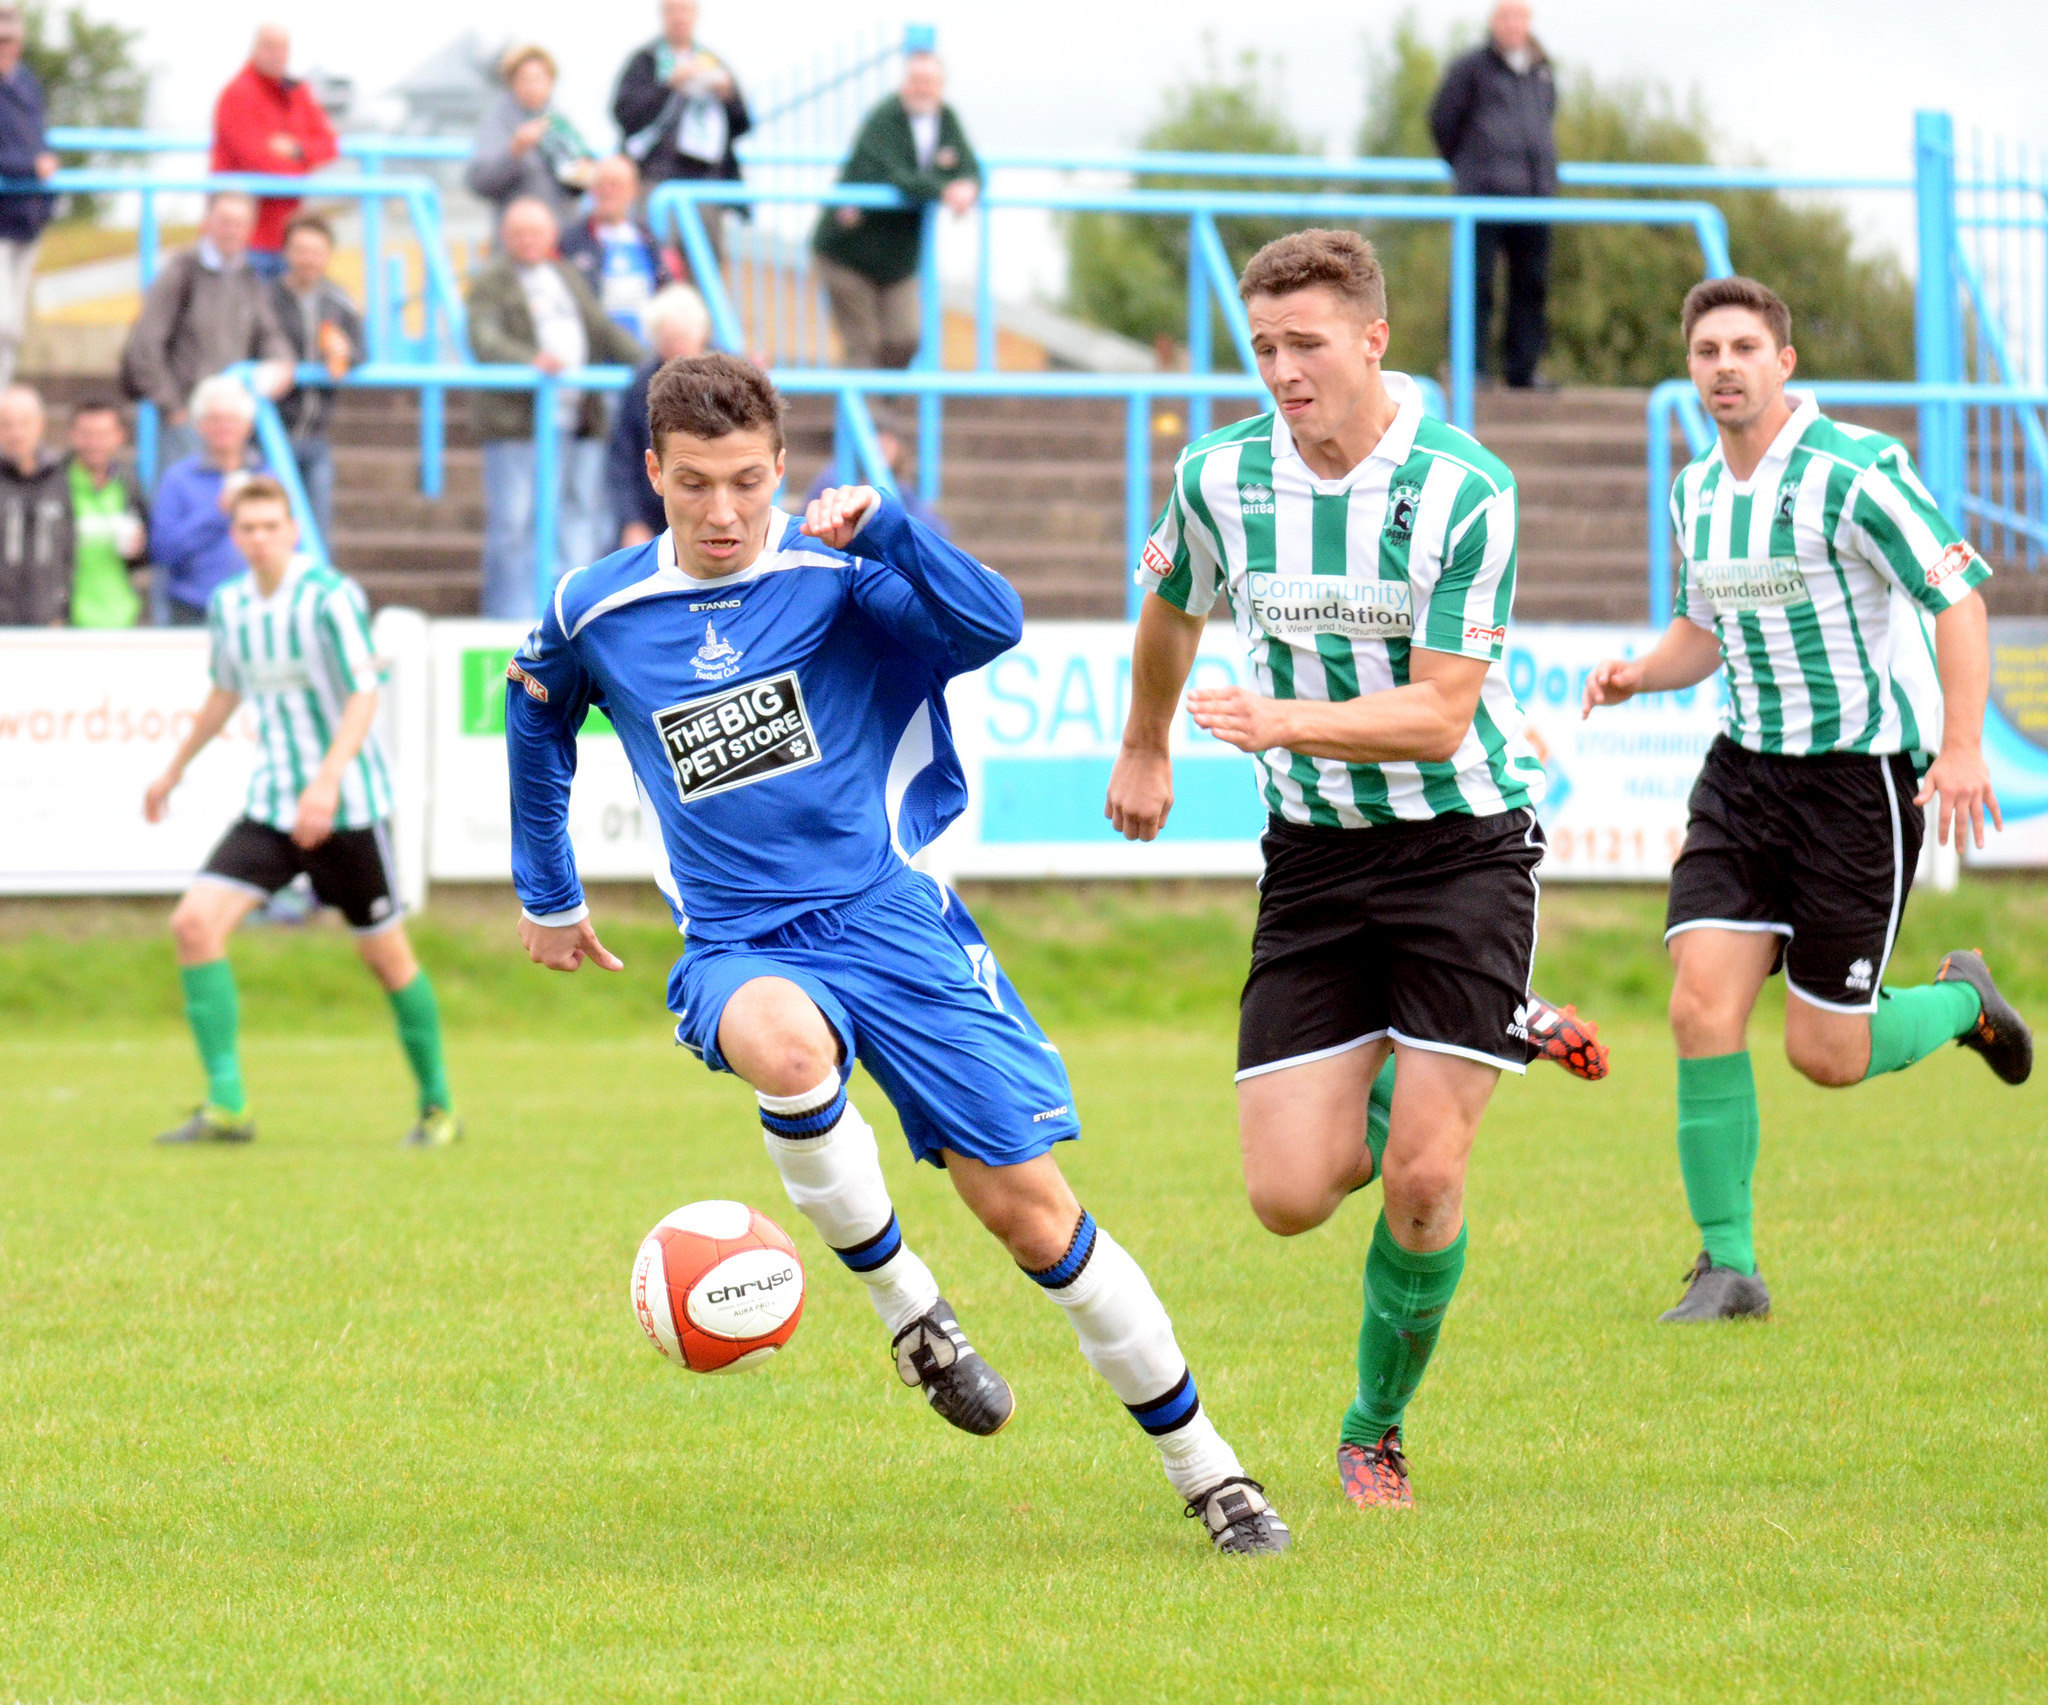 Ben Haseley in action against Blyth Spartans.